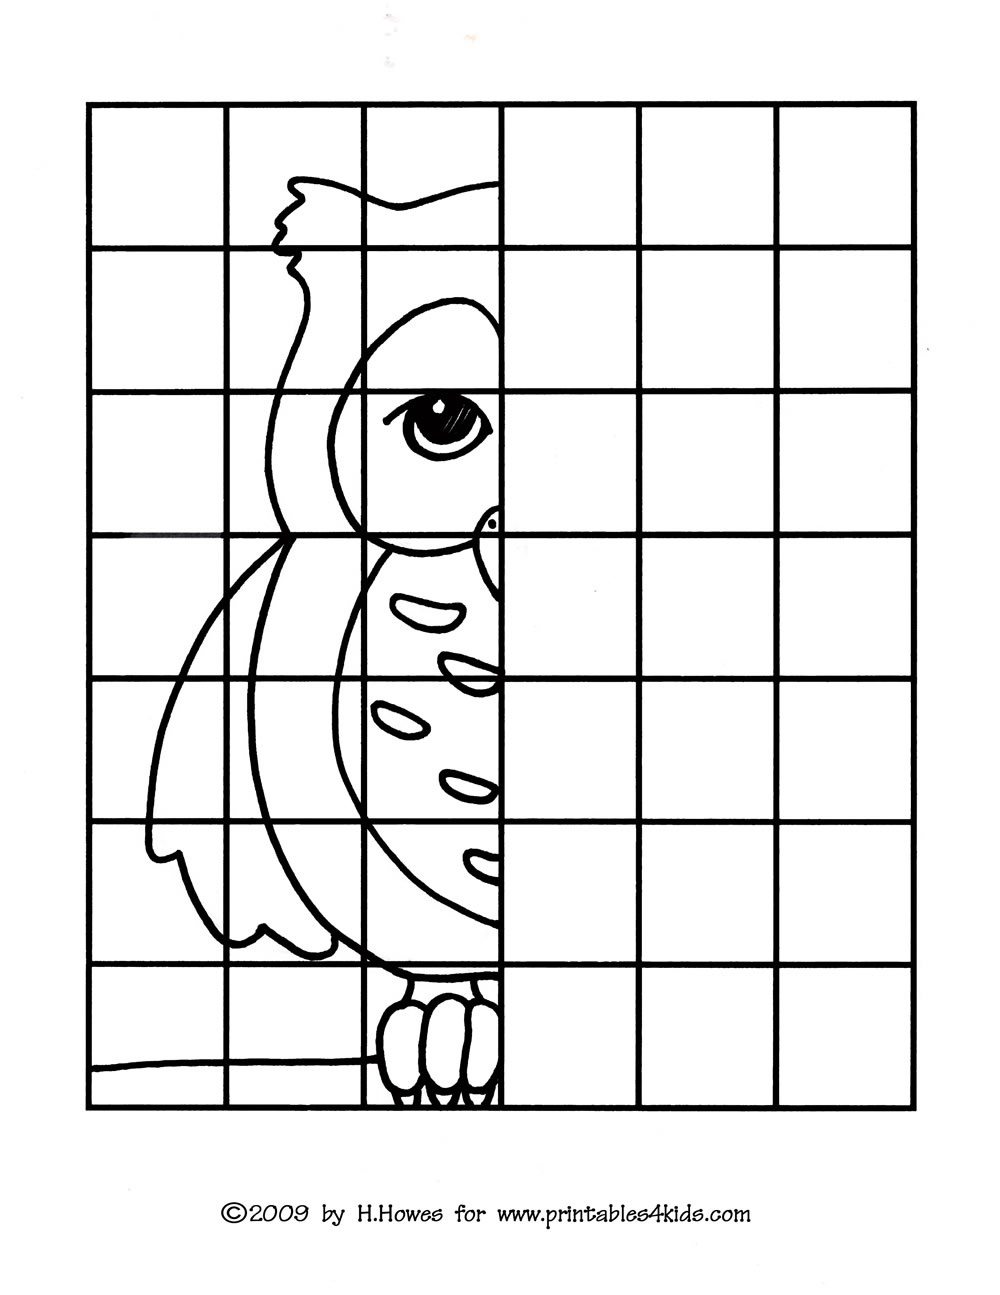 Printable Drawing Worksheets At Paintingvalley | Explore - Free Printable Drawing Worksheets